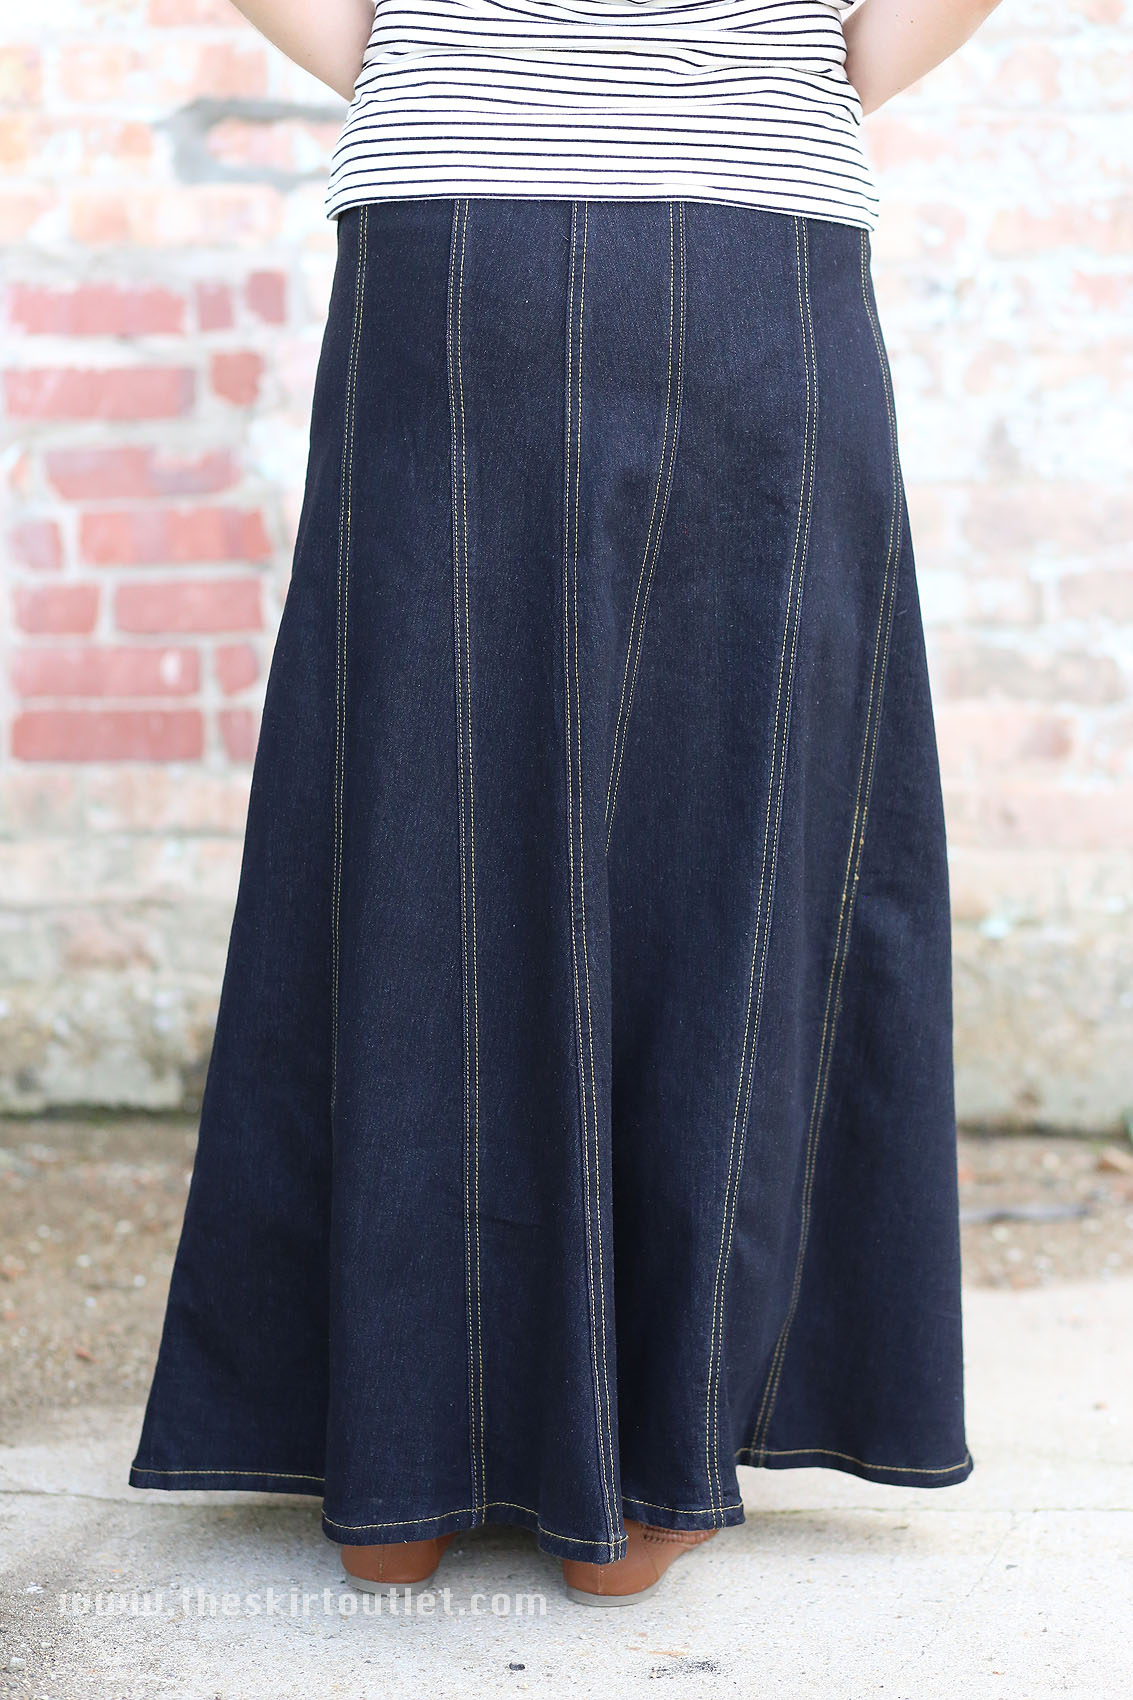 Plus size denim gored skirt – Modern trending things photo blog